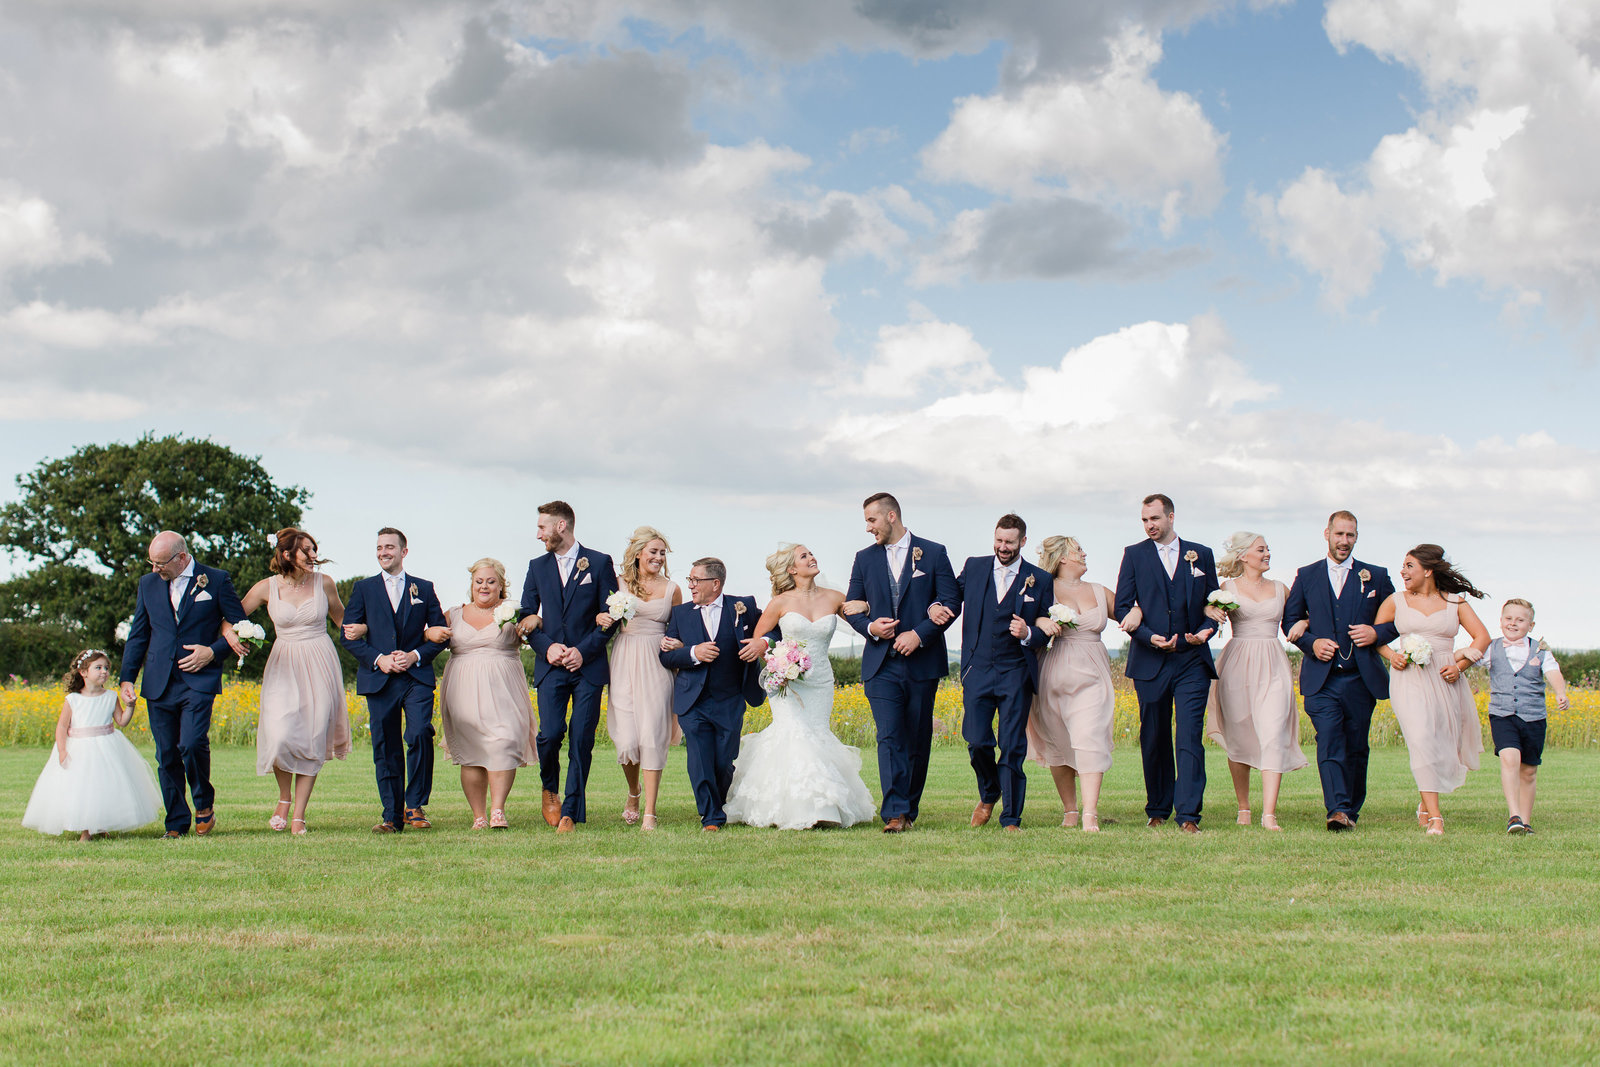 adorlee-0357-southend-barns-wedding-photographer-chichester-west-sussex